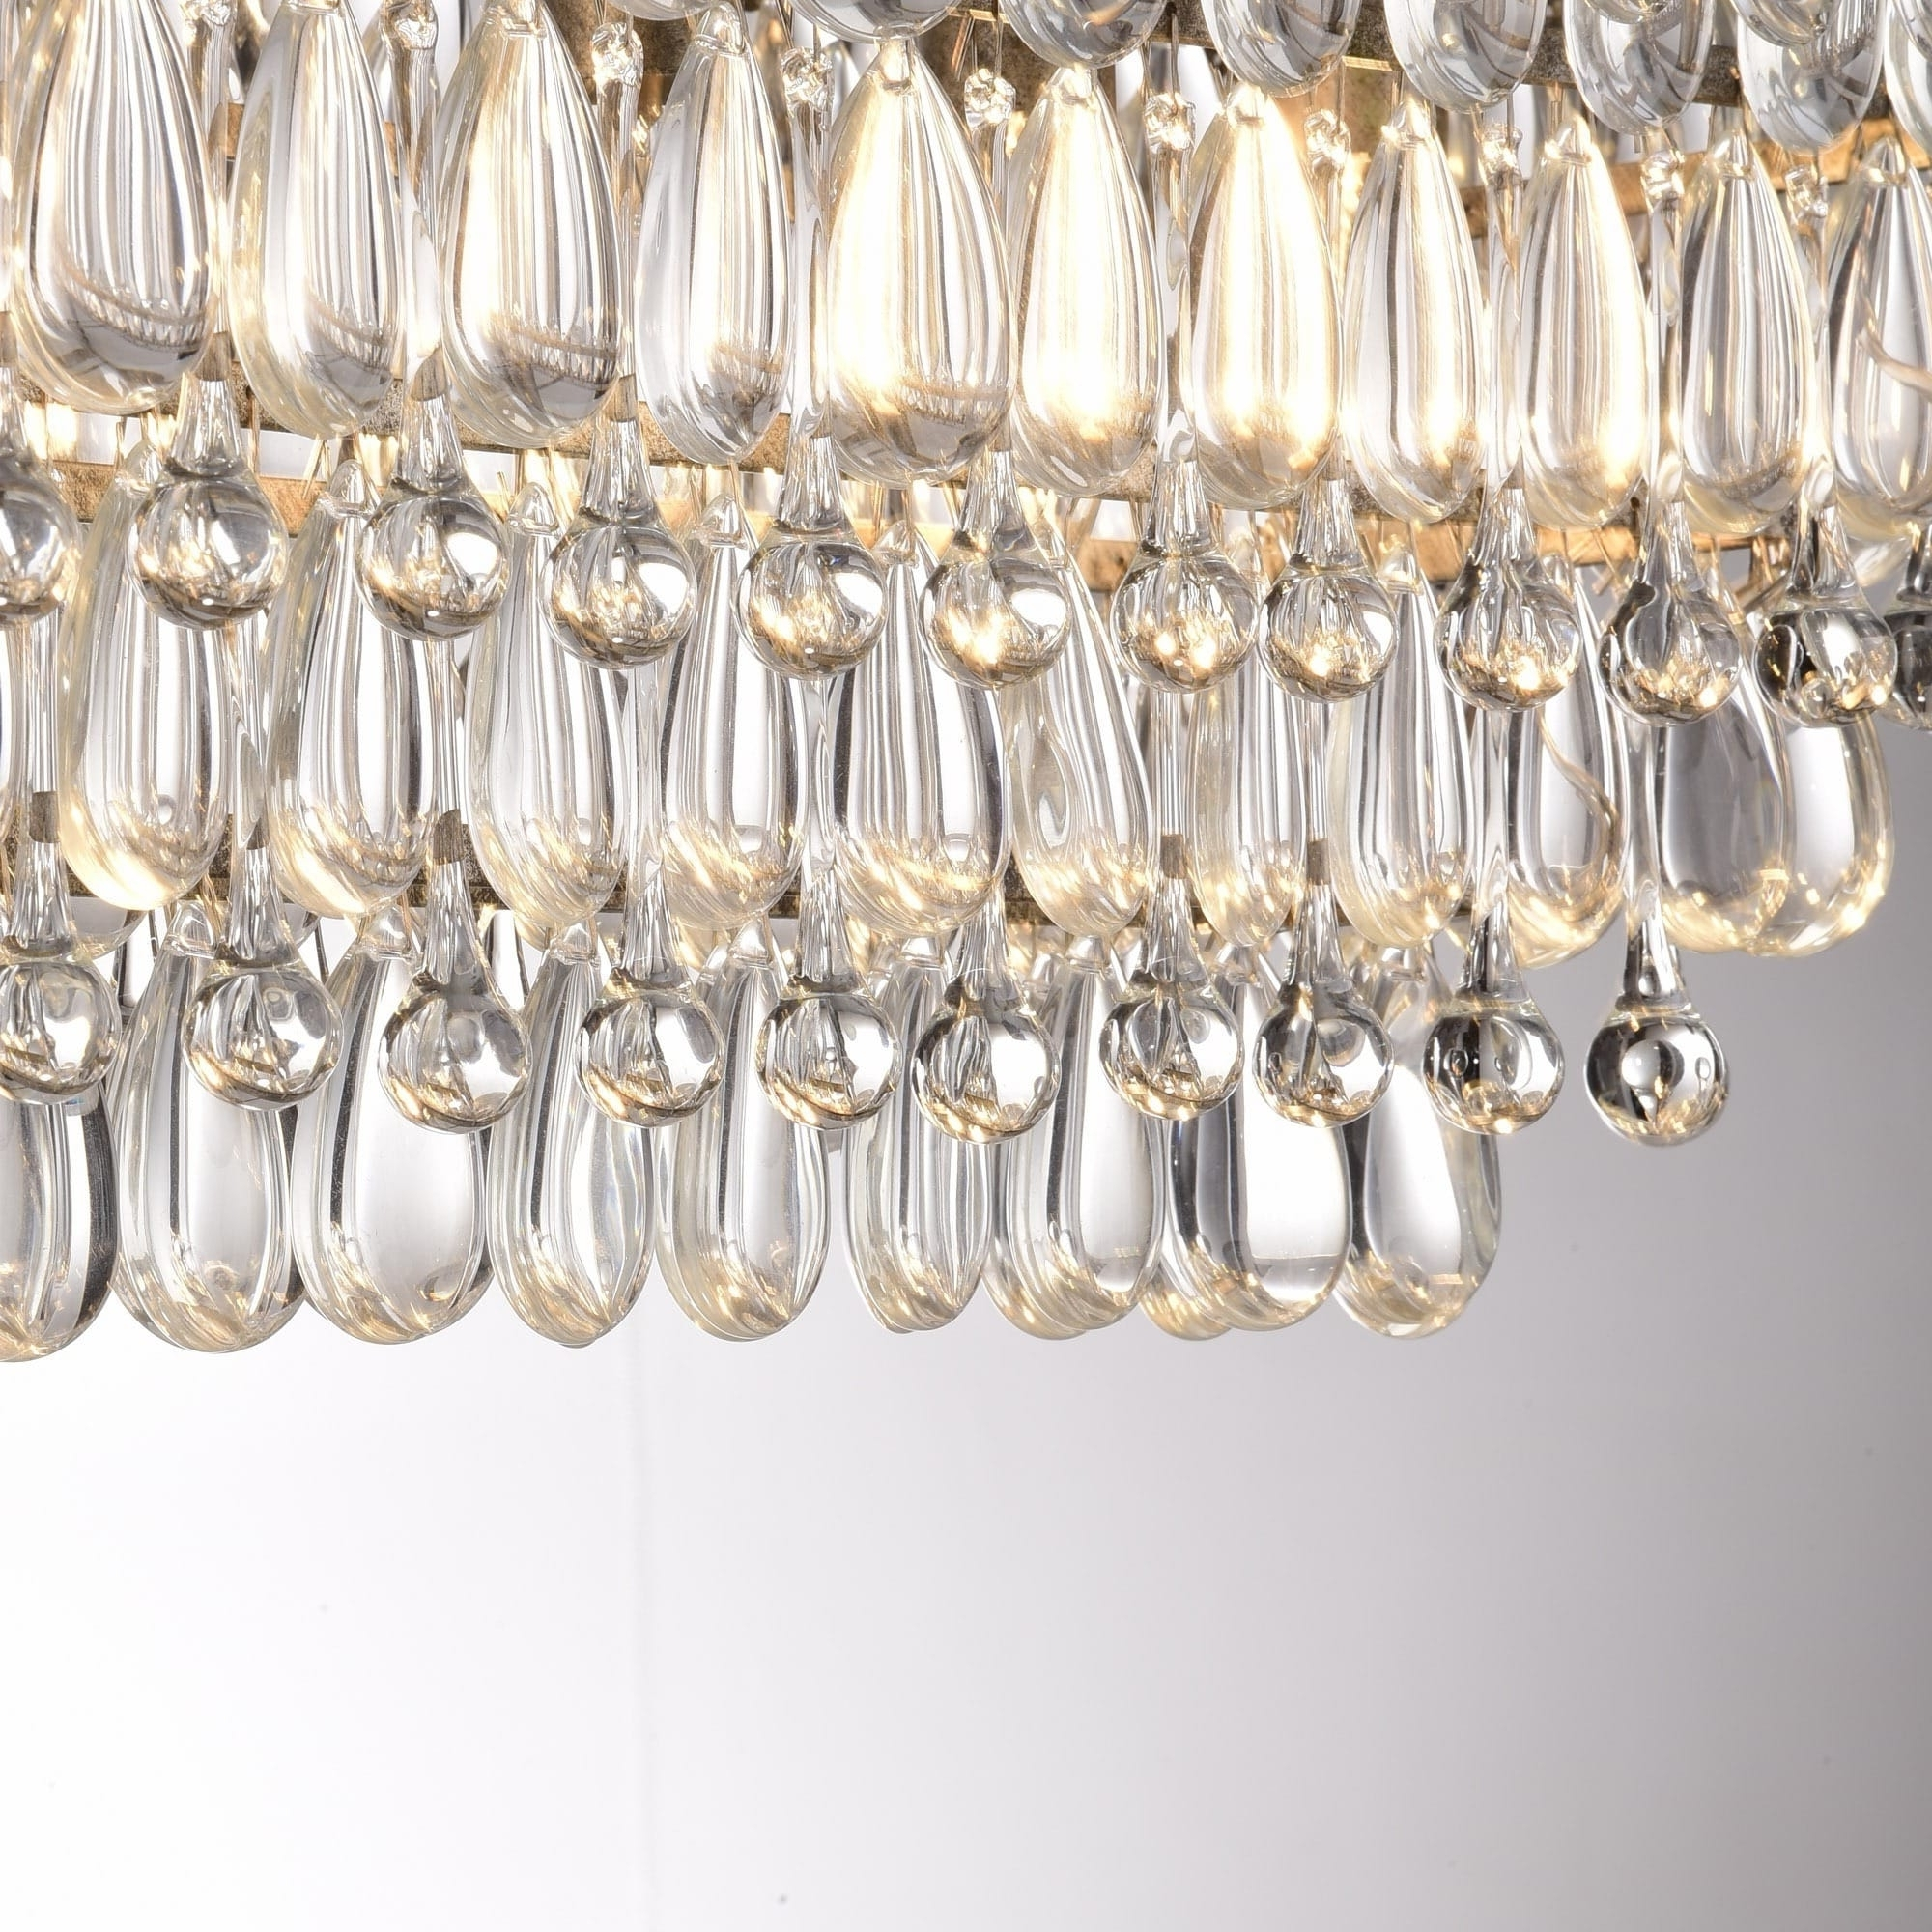 Glass Droplet Chandelier Inside Preferred The Lighting Store Antique Silver 6 Light Rectangular Glass Droplets (View 19 of 20)